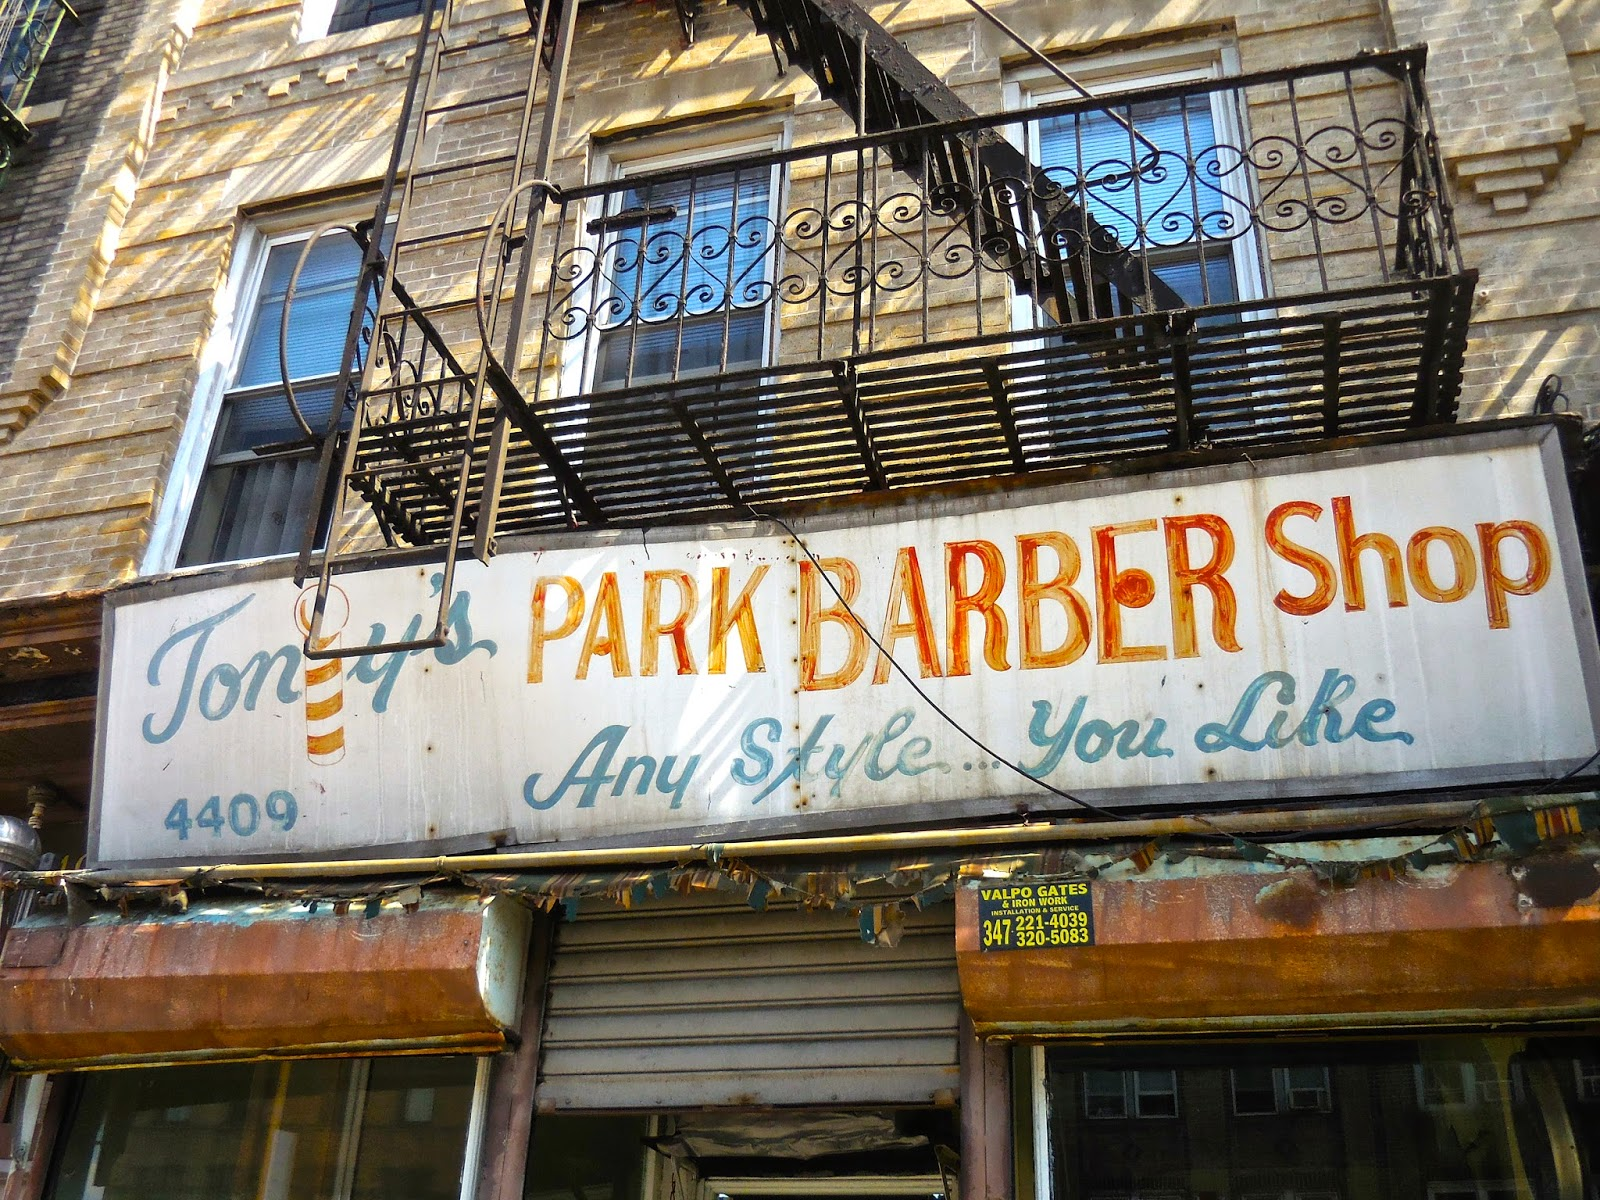 Kitchen cabinets sunset park brooklyn - Tony S Park Barber Shop On Fifth Avenue In Sunset Park Brooklyn Has Been Here Over 100 Years According To Owner Tony Garofalo Who Has Been With The